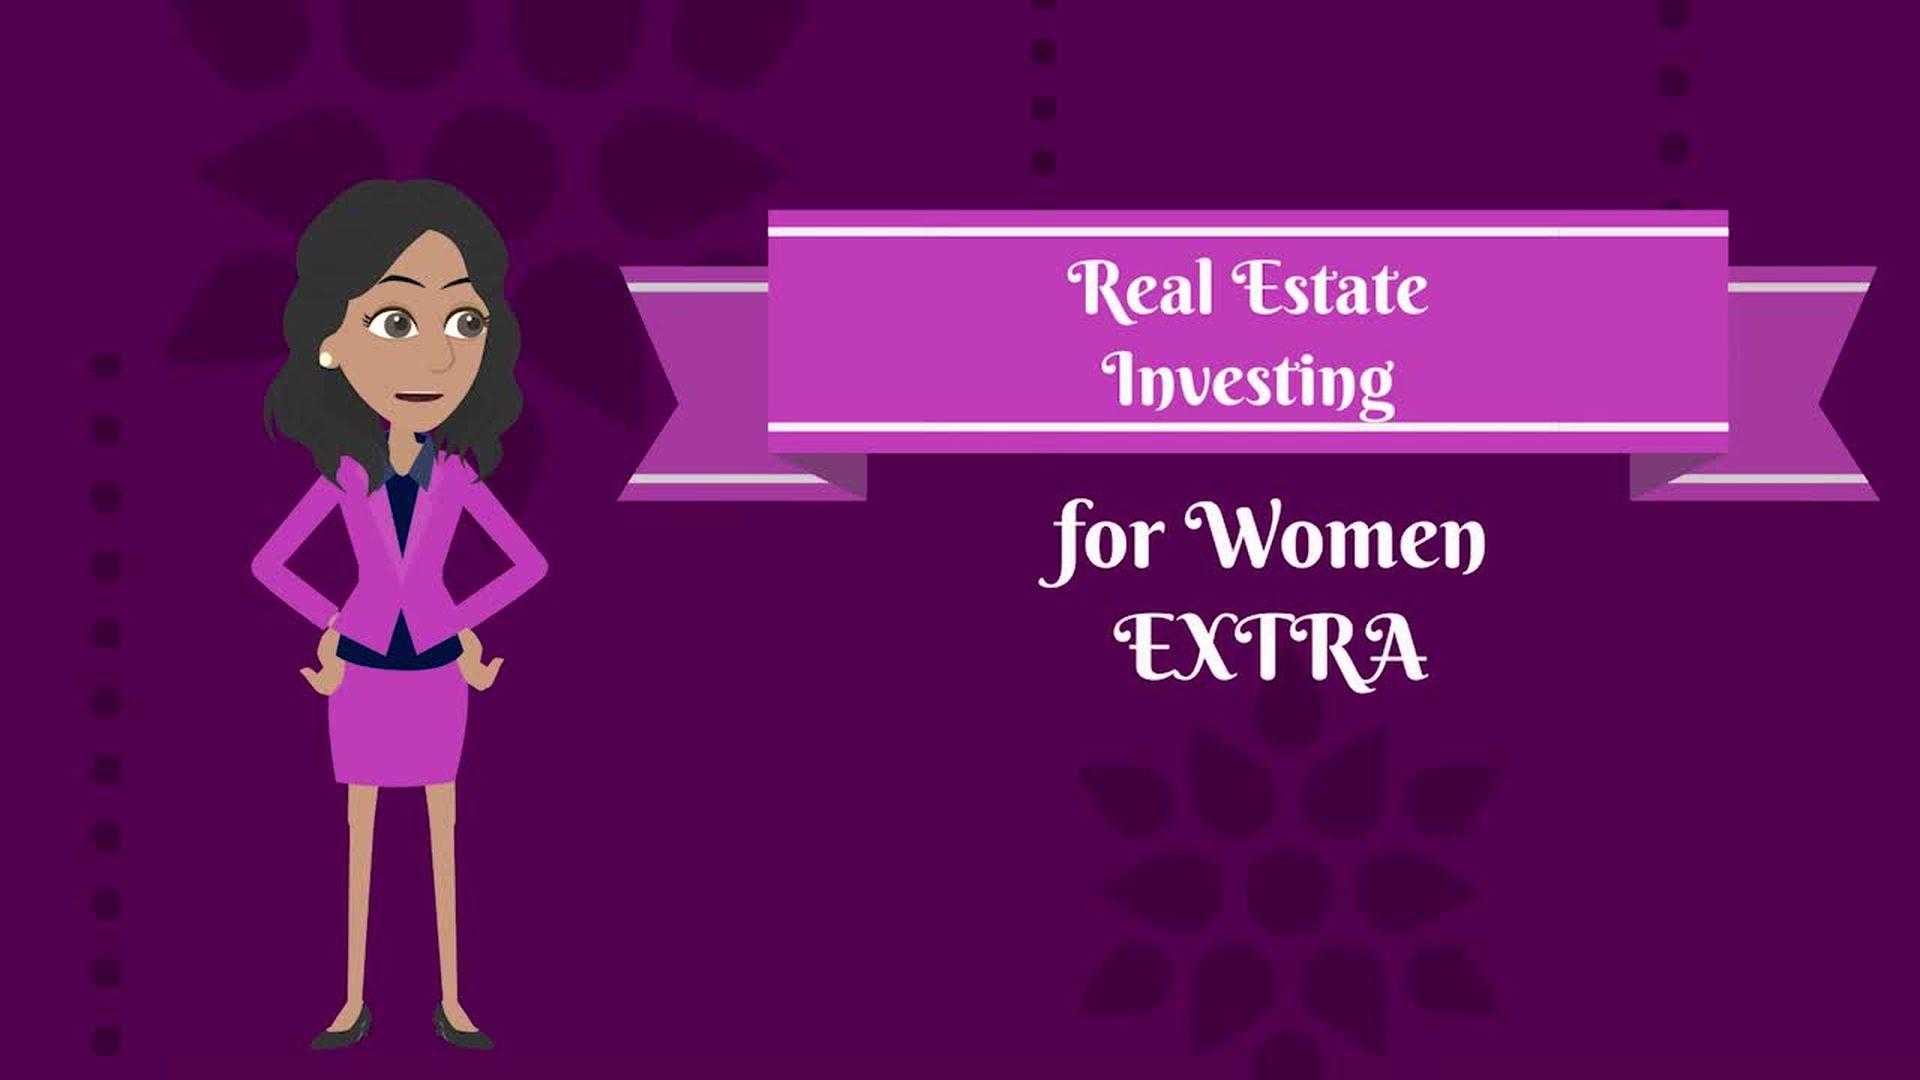 """Create a Strong Foundation with Pilialoha """"Pili"""" Yarusi - REAL ESTATE INVESTING FOR WOMEN EXTRA"""